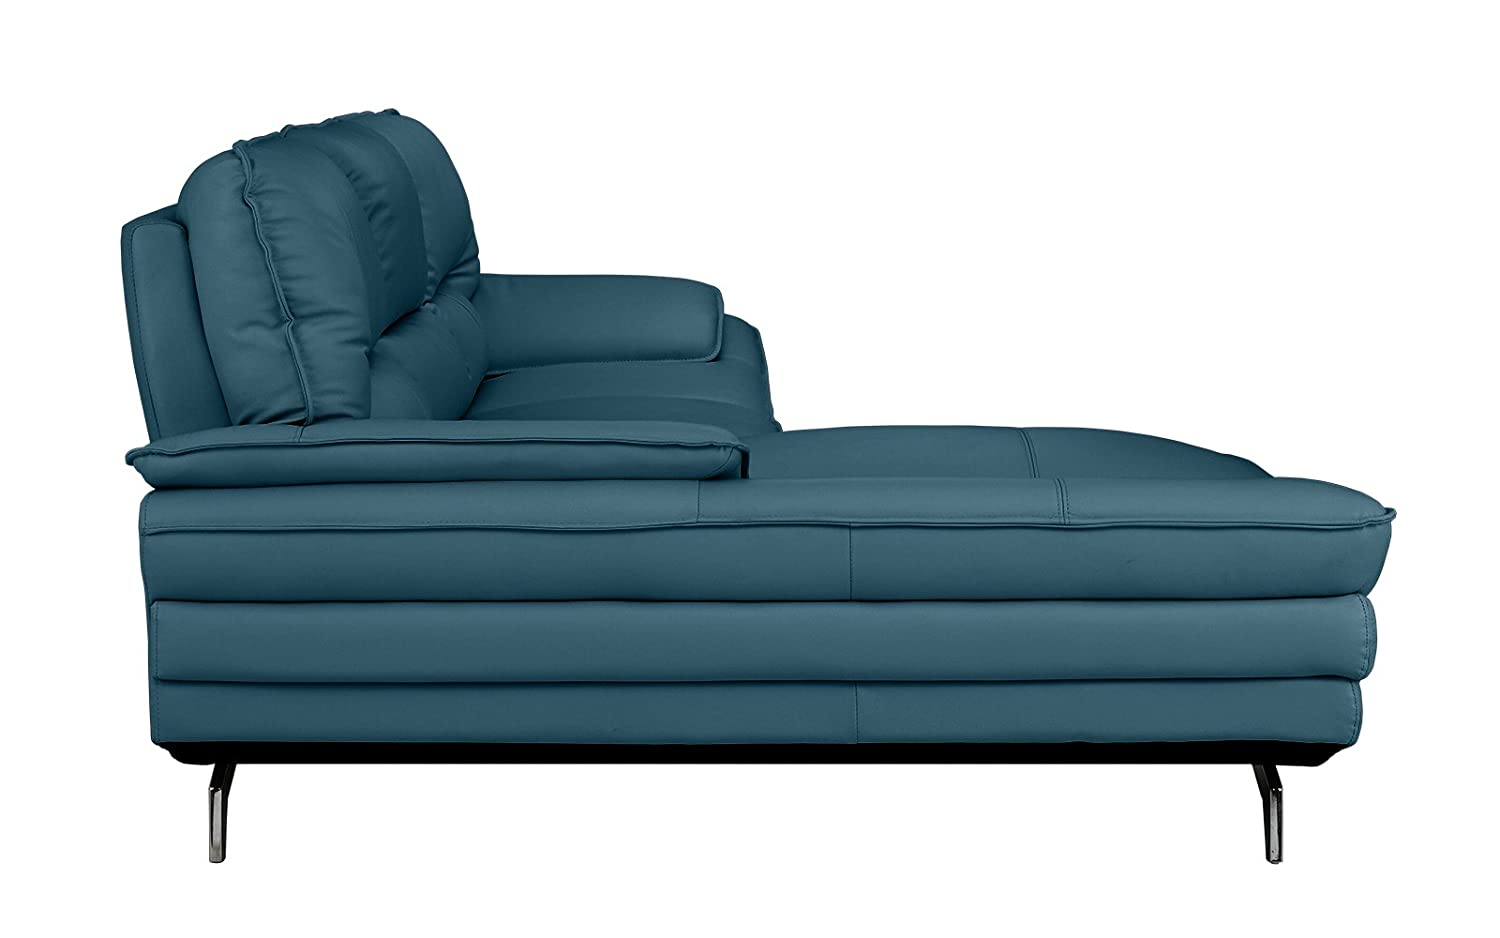 Divano Roma Furniture Living Room Leather Sectional Sofa Shape Couch With  Chaise Lounge Teal Kitchen Dining